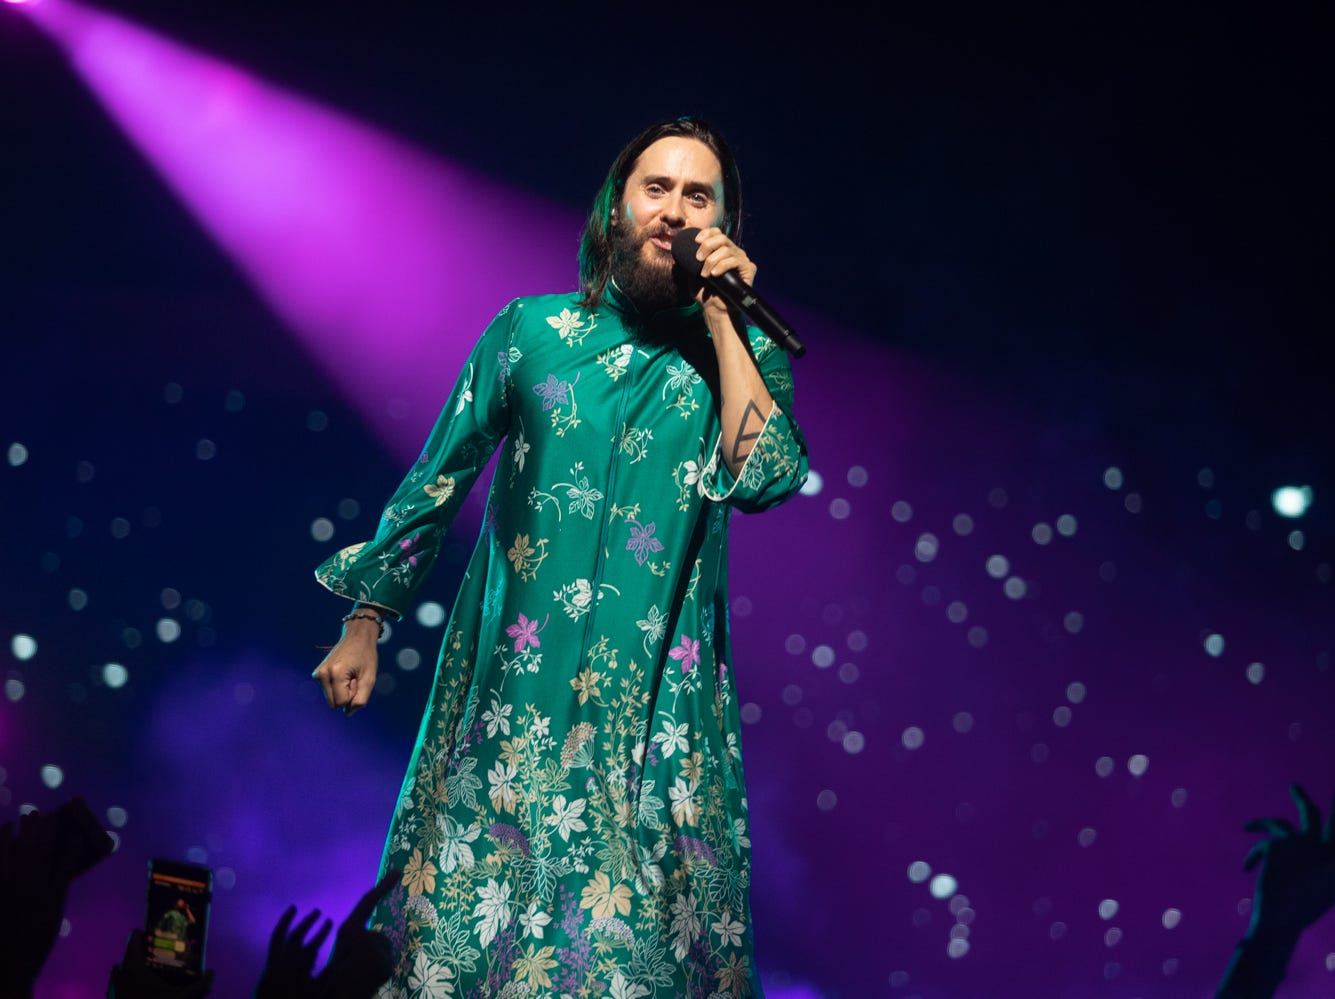 30 Seconds to Mars performs at Ak-Chin Pavilion on Sunday, July 22, 2018, in Phoenix.